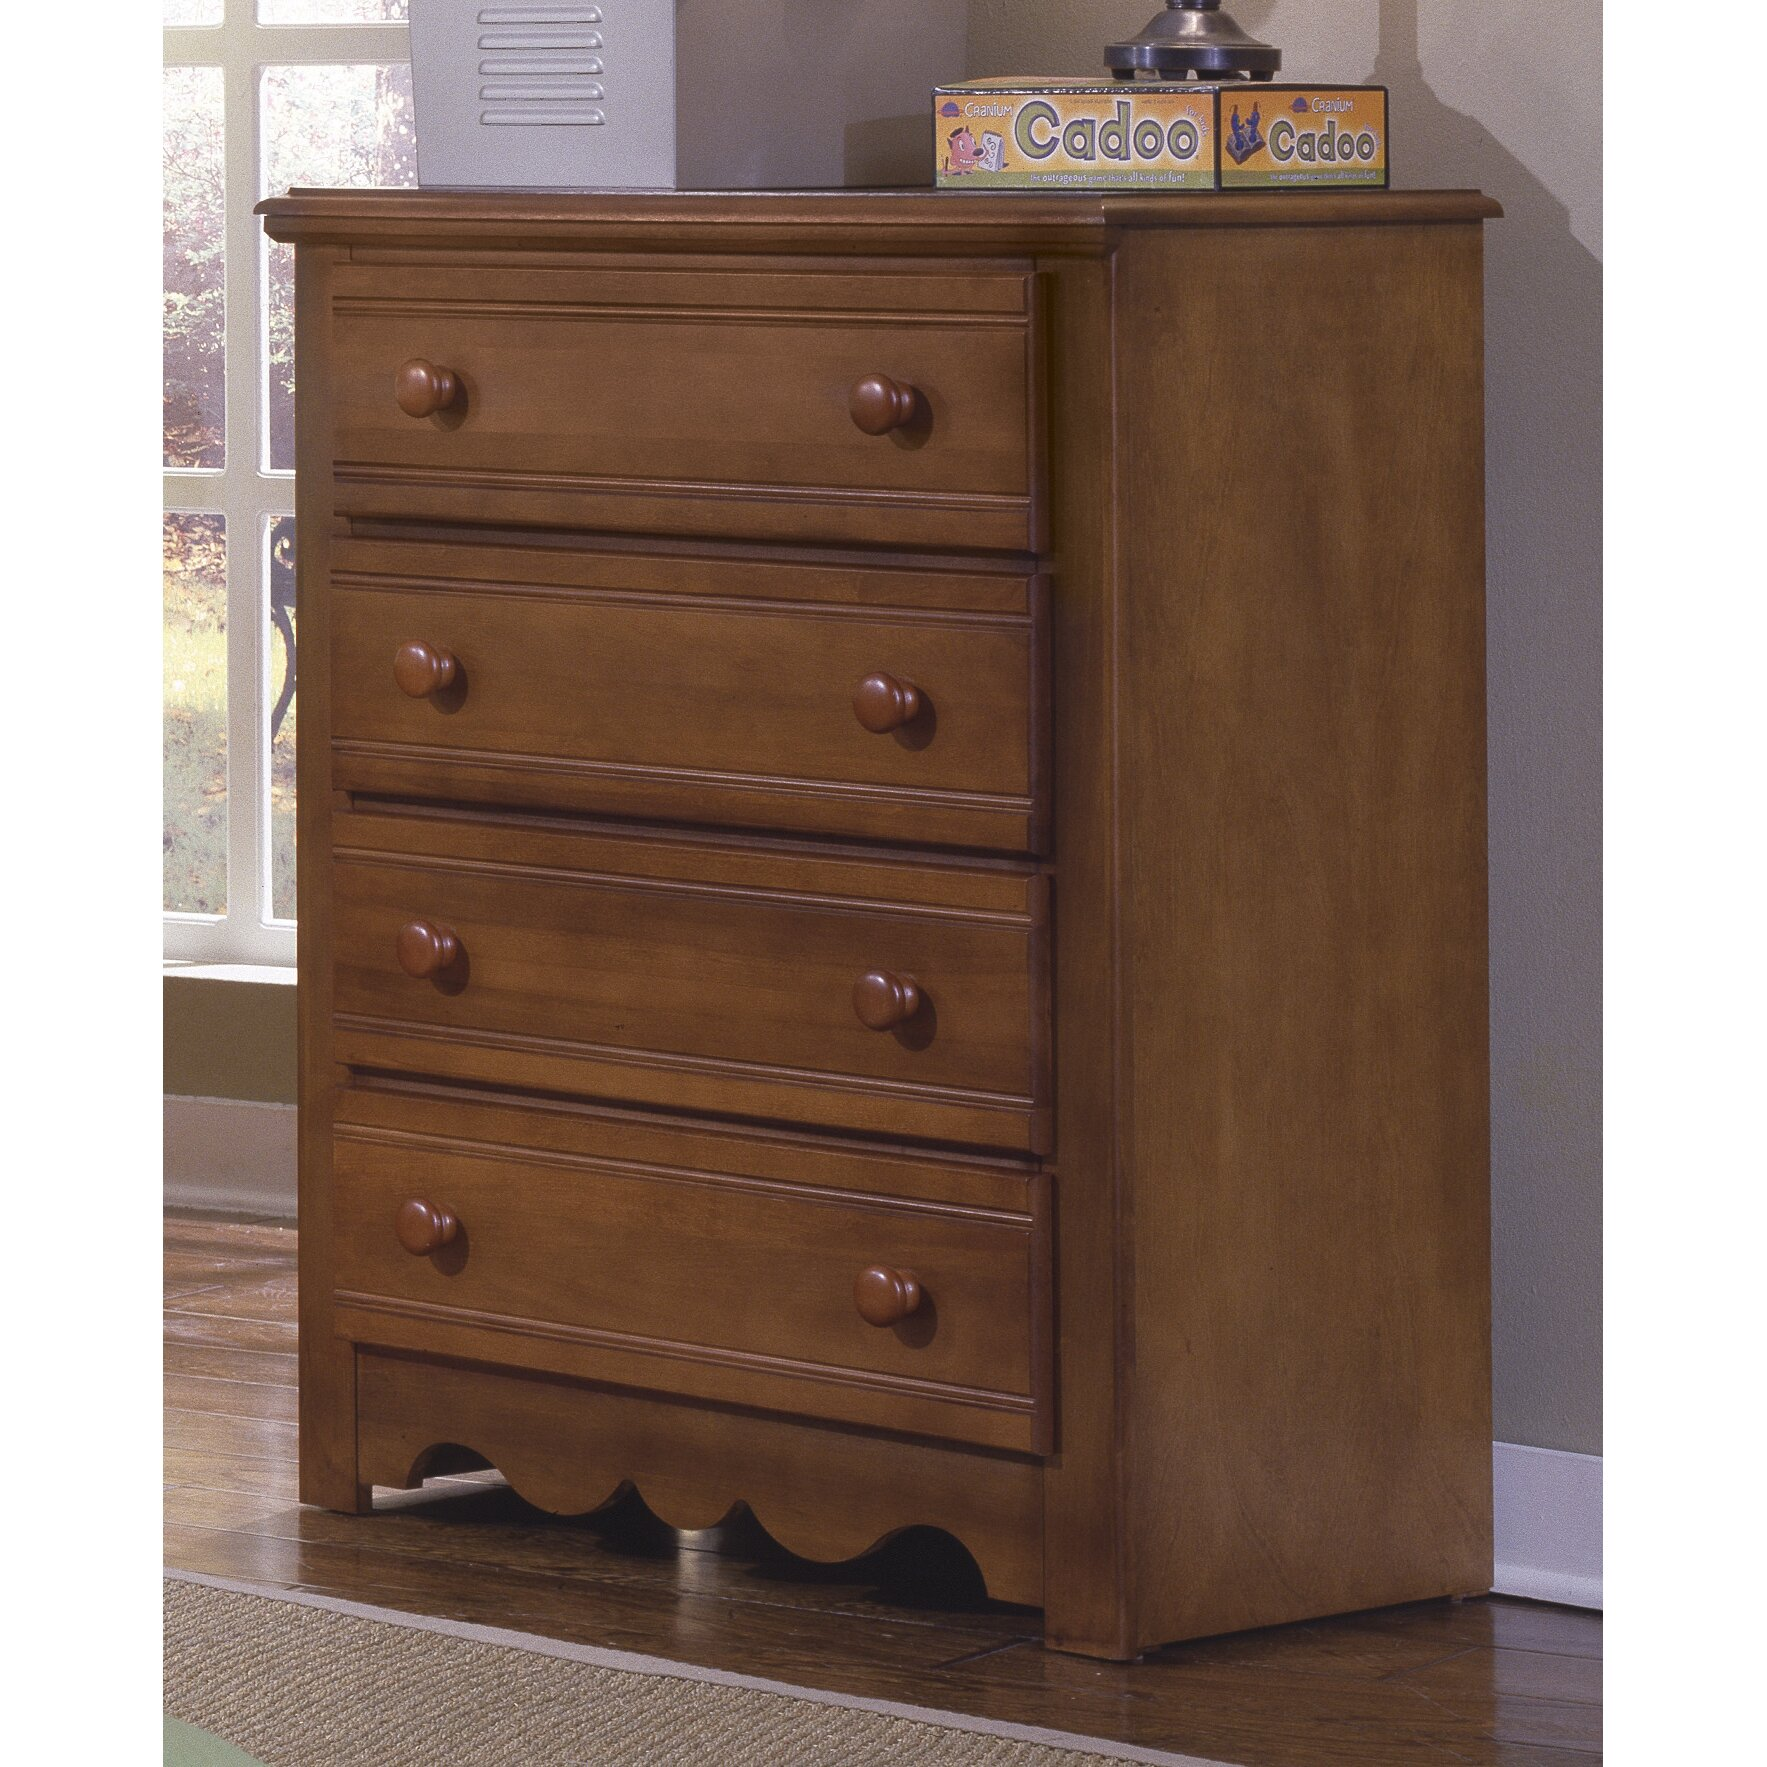 Carolina Furniture Works Inc Crossroads Panel Customizable Bedroom Set Reviews Wayfair